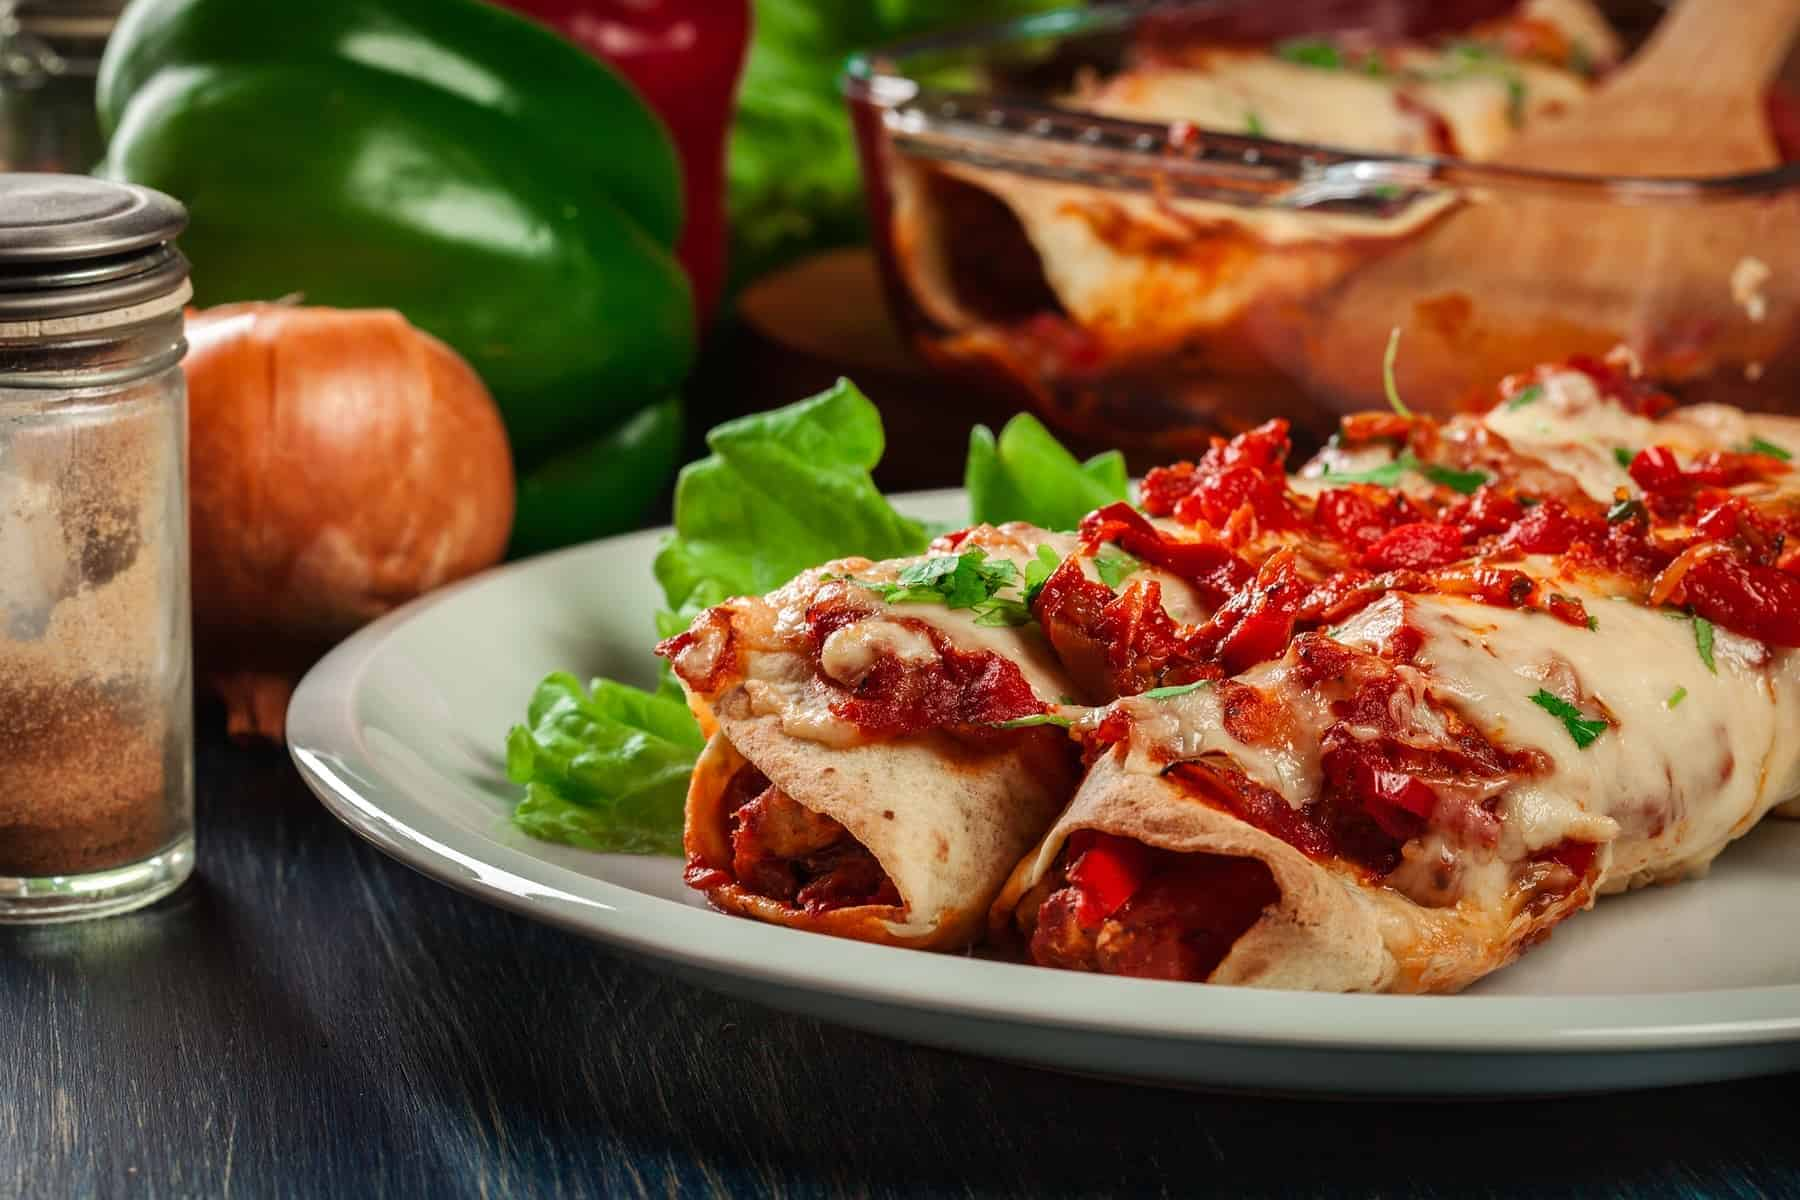 Traditional mexican enchiladas with chicken meat, spicy tomato sauce and cheese on a plate. Mexican cuisine.